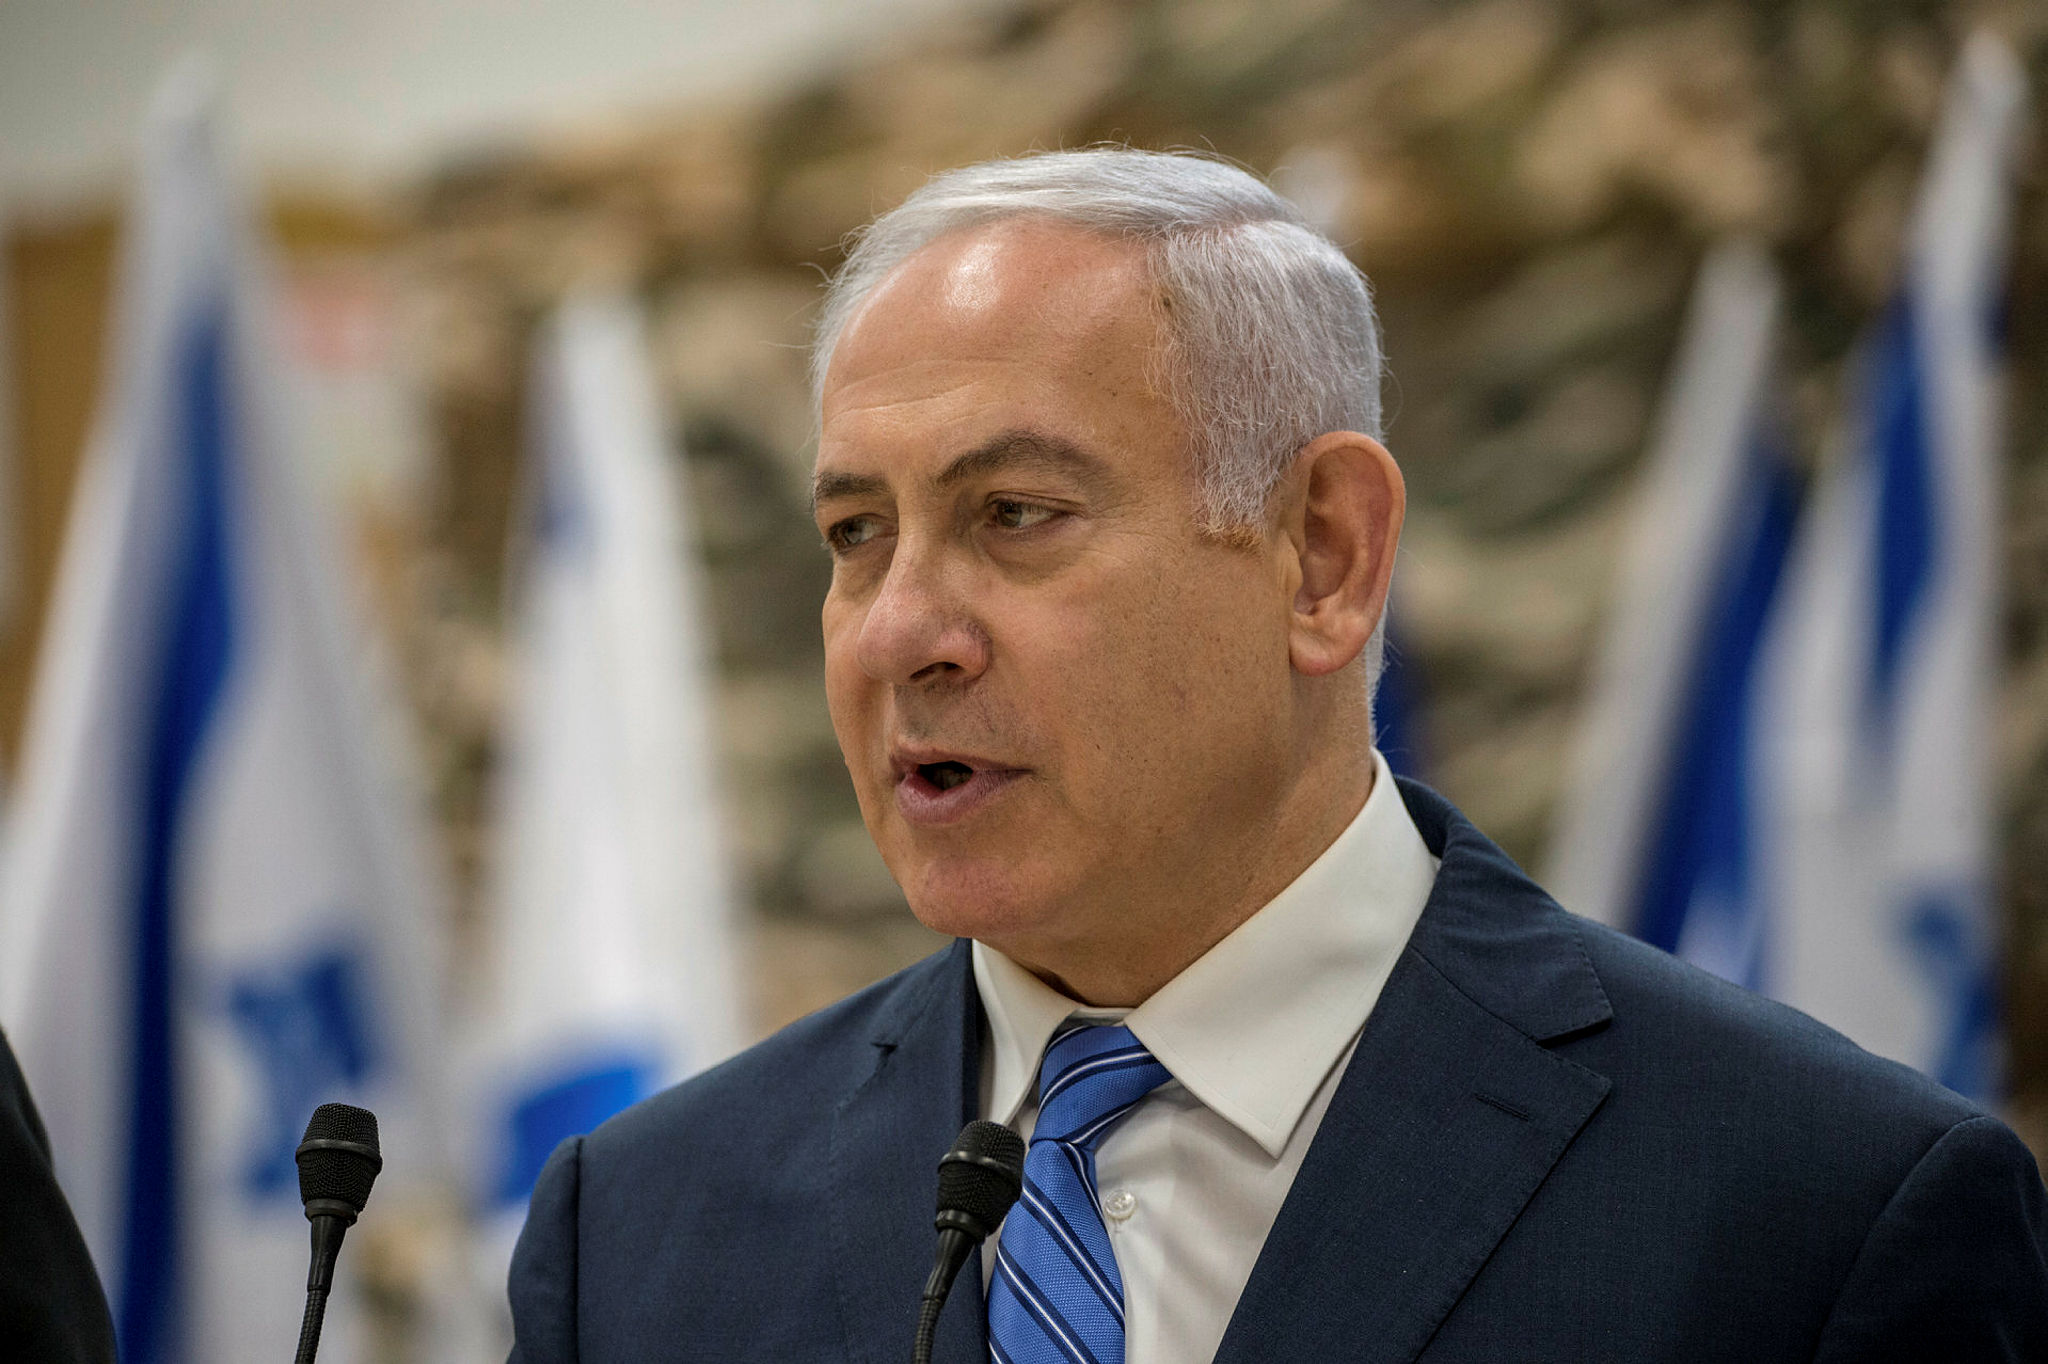 Netanyahu: Israel conducted airstrikes on Iranian weapons in Syria